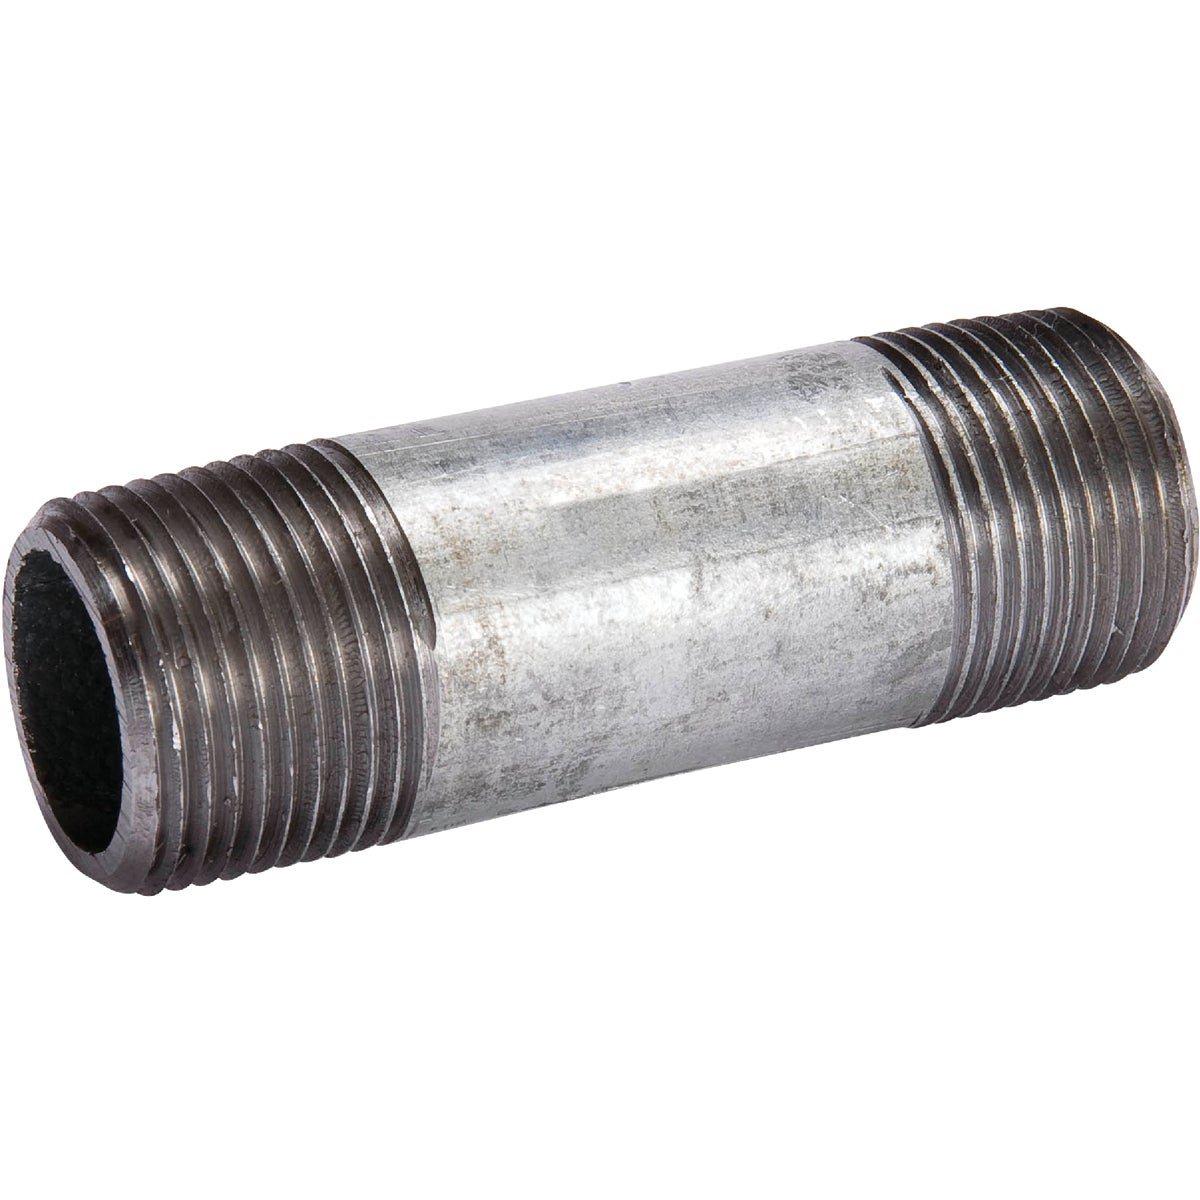 1/2X1-1/2 GALV NIPPLE - 10401 by Southland Pipe Nippl